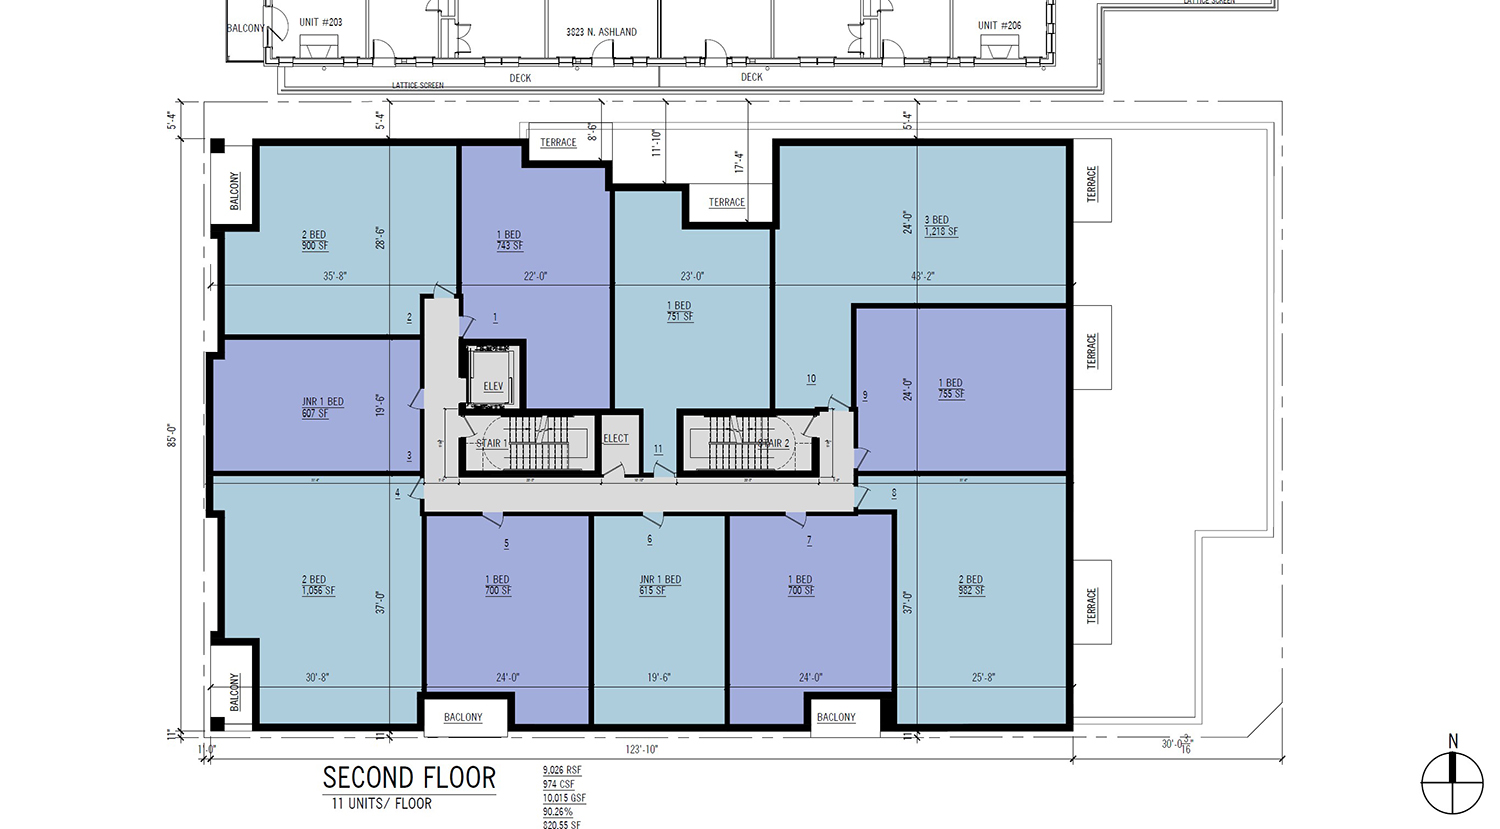 Second Floor Plan for 3817 N Ashland Avenue. Drawing by 360 Design Studio